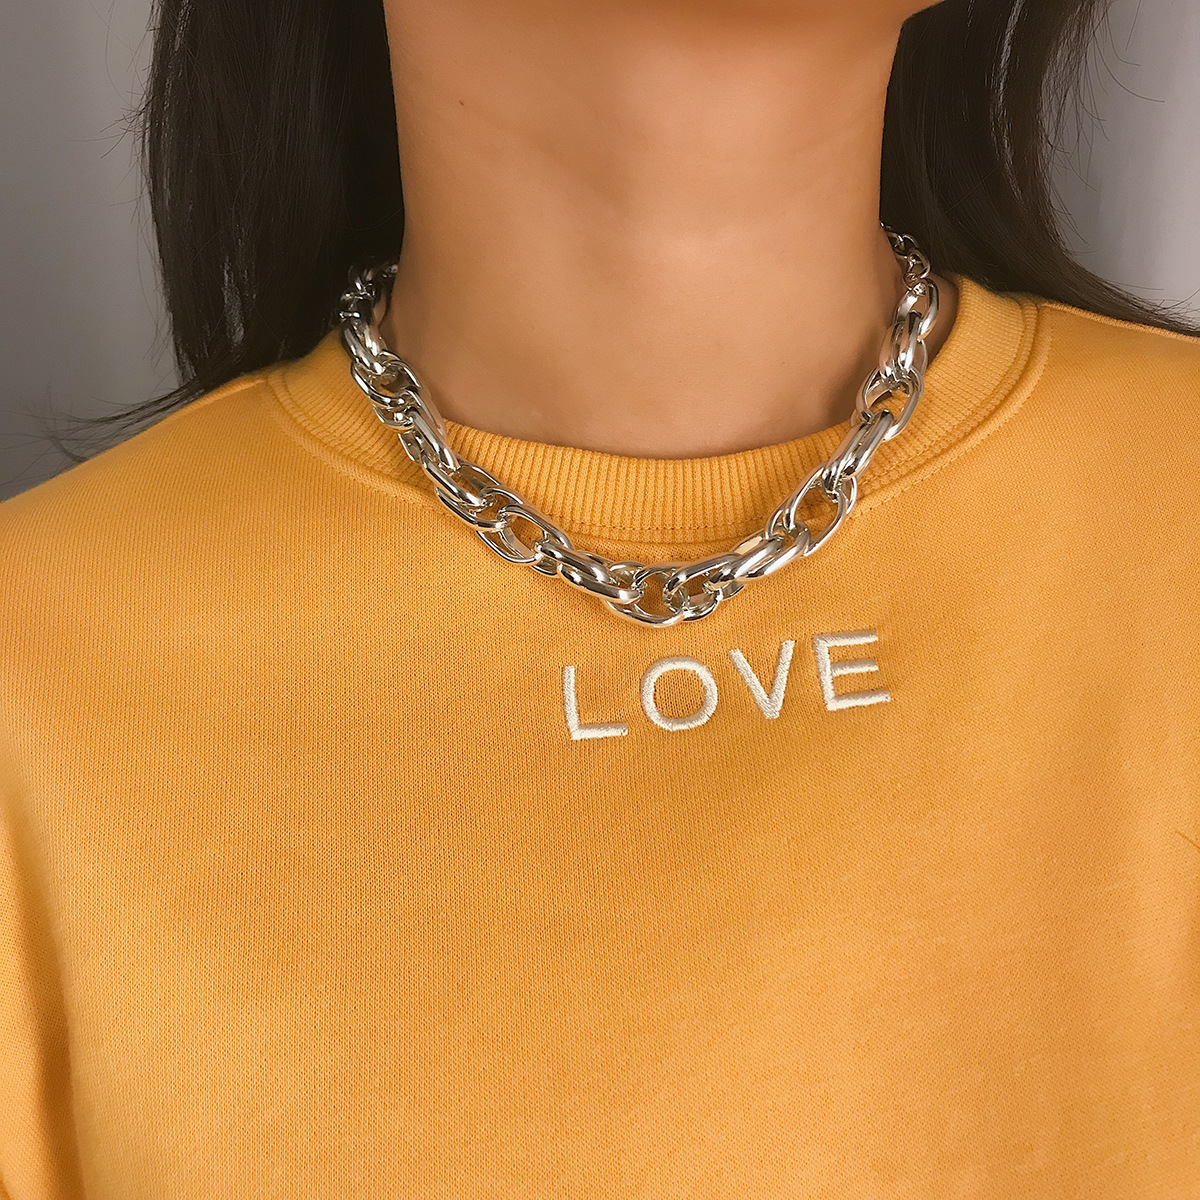 Modest Ziime 2019 Metal Punk Thick Chain Choker Necklaces For Women And Men Vintage Simple All-match Short Necklace Fashion Jewelry Bringing More Convenience To The People In Their Daily Life